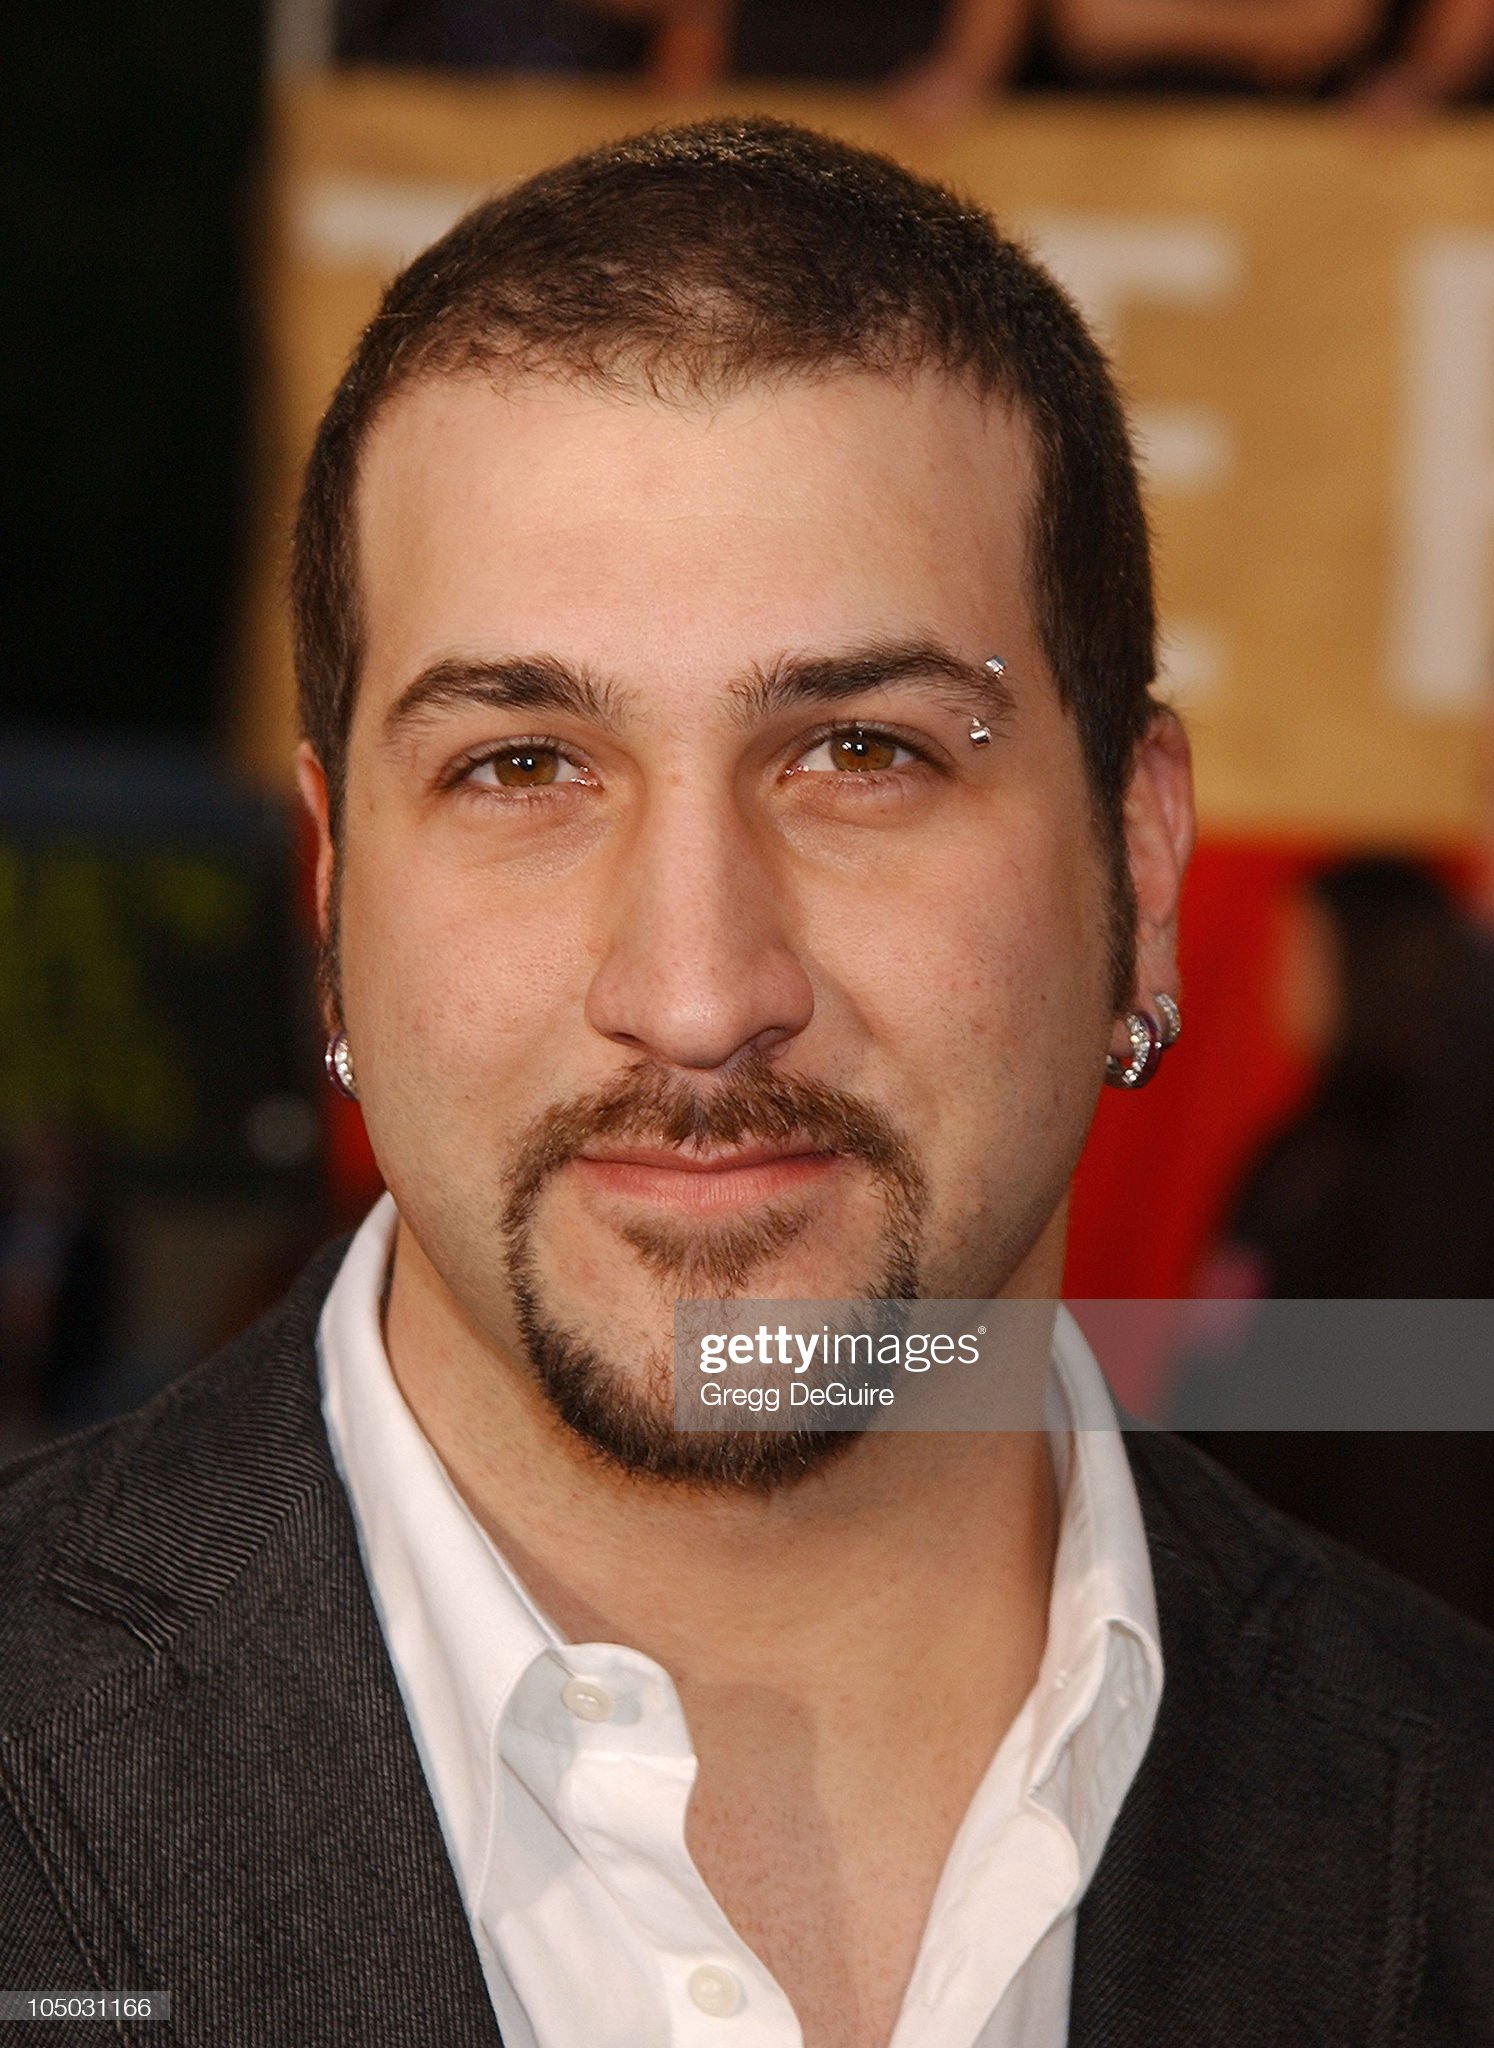 Pueblo Italiano - Página 13 Joey-fatone-during-the-29th-annual-peoples-choice-awards-arrivals-by-picture-id105031166?s=2048x2048